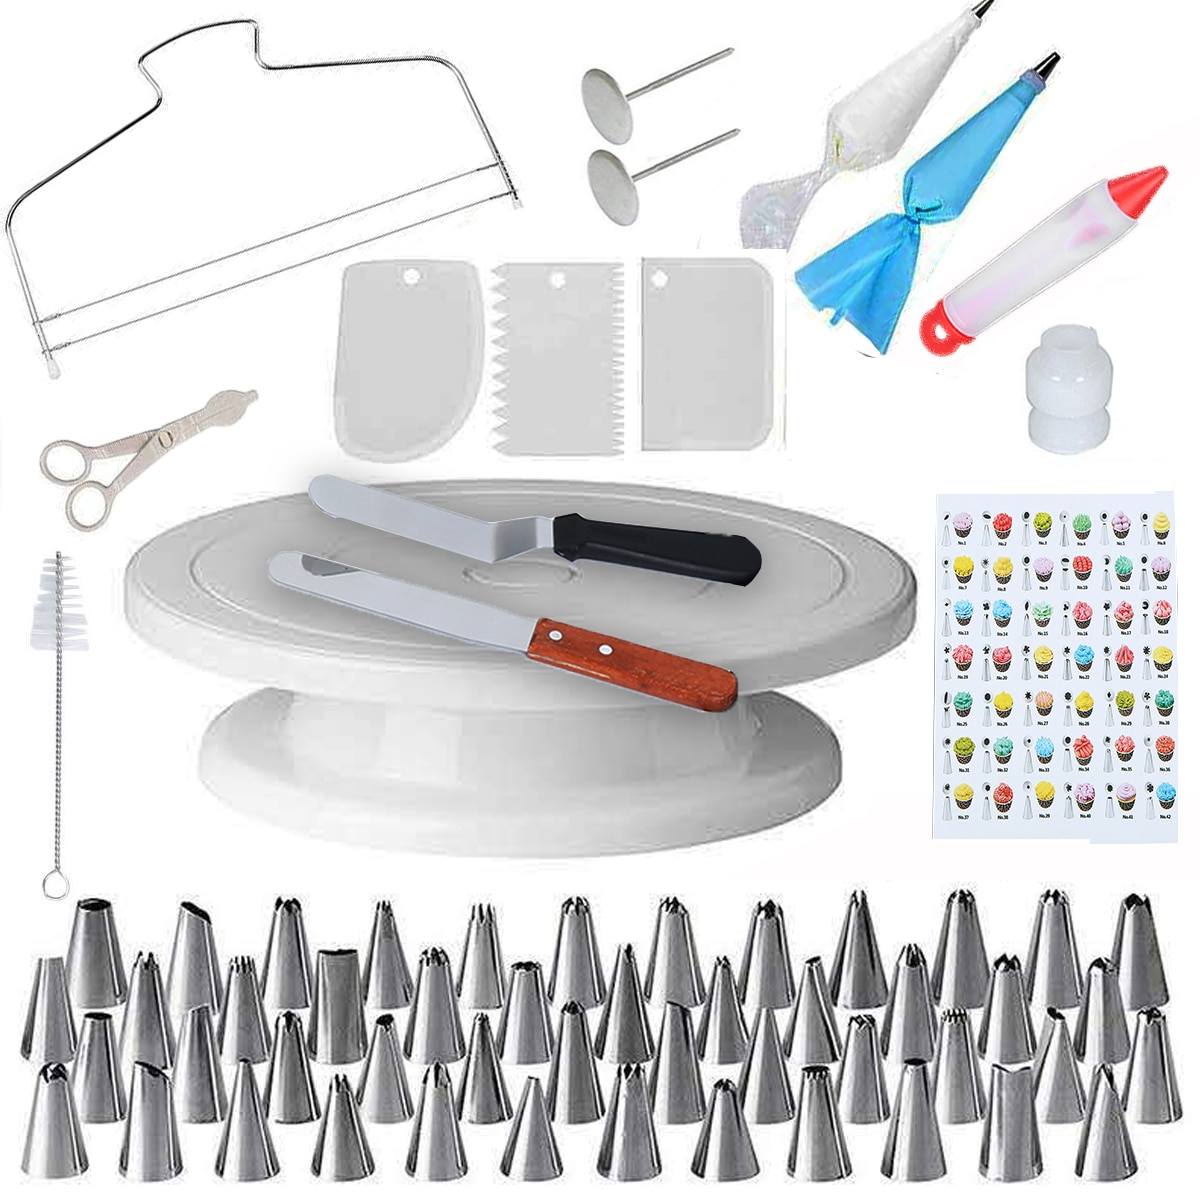 Honhill Cake Decorating Tool Nozzles Kit Turntable Baking Flower Icing Piping 73 PCS DIY Couplers Cream Baking Tools 12pcs cake decorating tool kits piping tip and bag baking icing set with 3 spatulas baking decoration tool